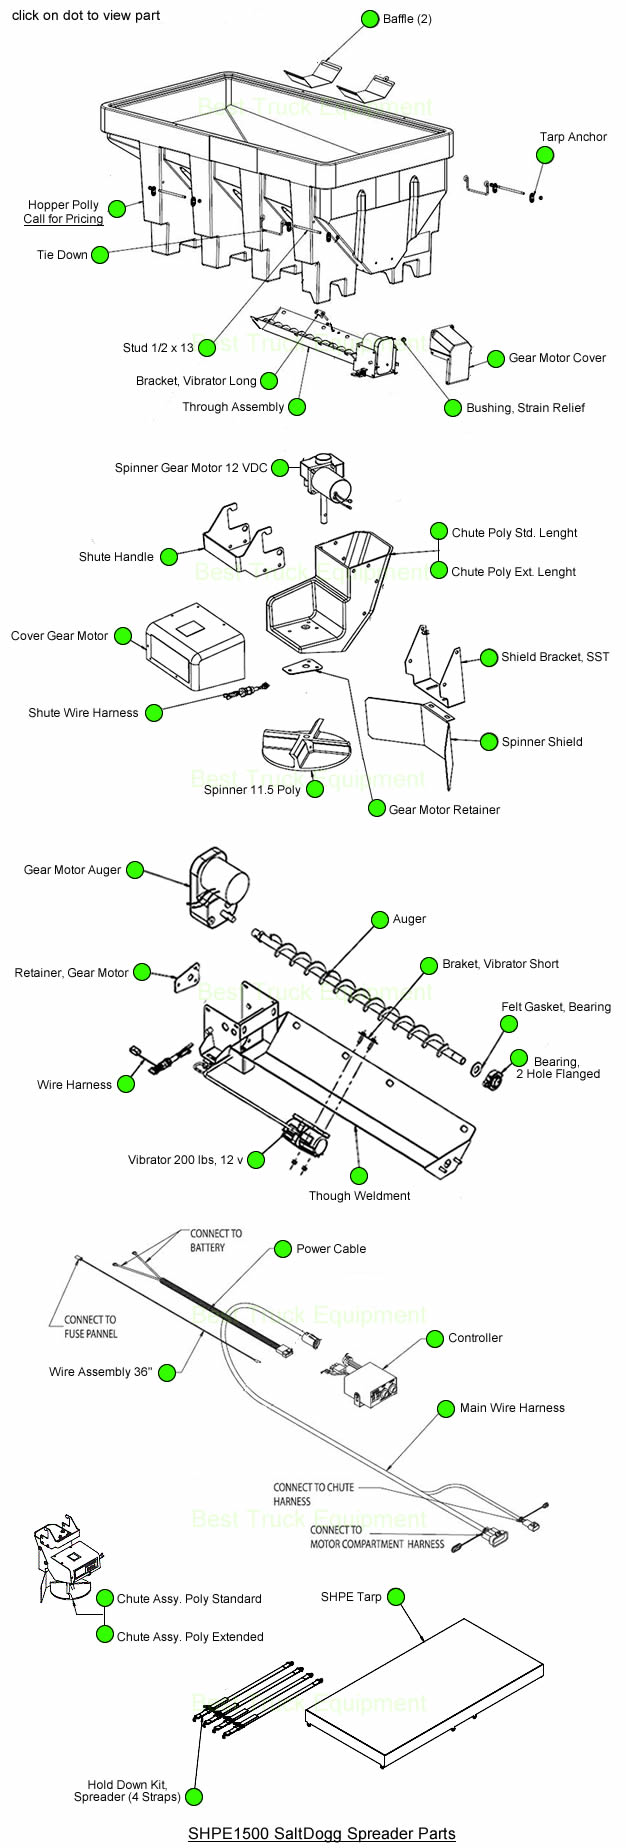 shpe2000 saltdogg shpe2000 buyers salt spreader parts by part look up diagram salt dogg wiring harness at gsmx.co